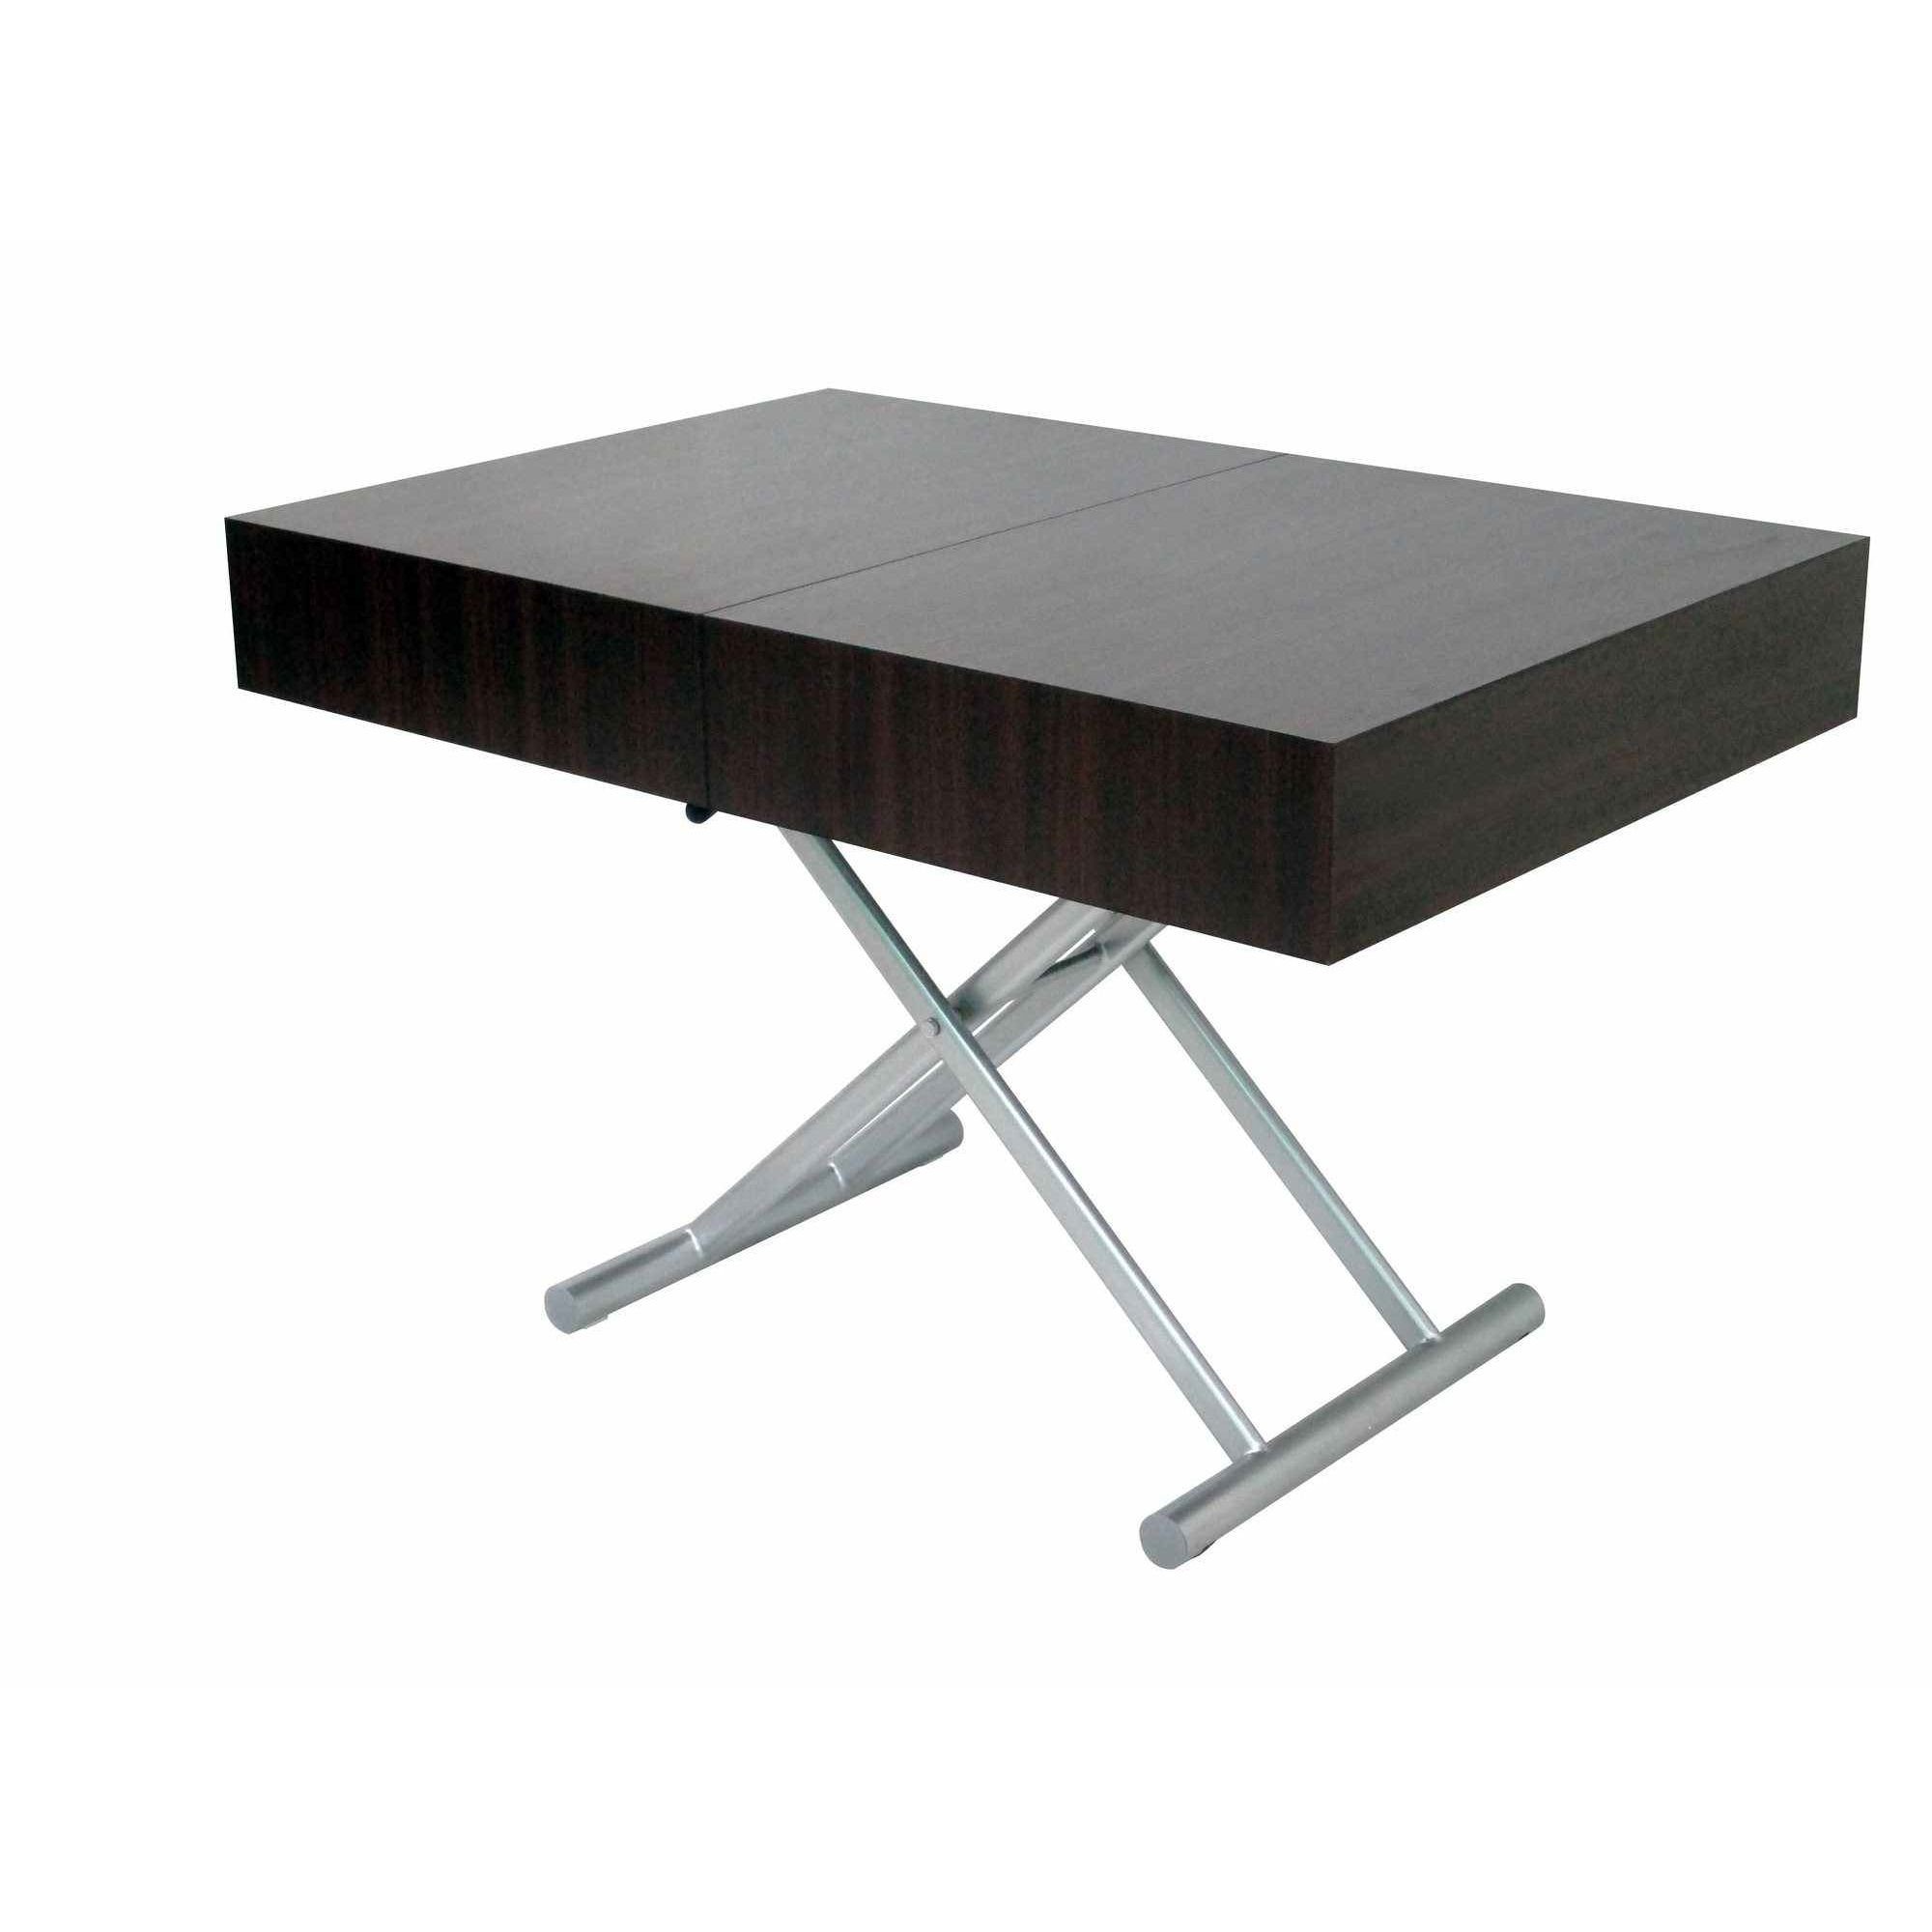 Table basse relevable extensible la redoute - Table de salon la redoute ...